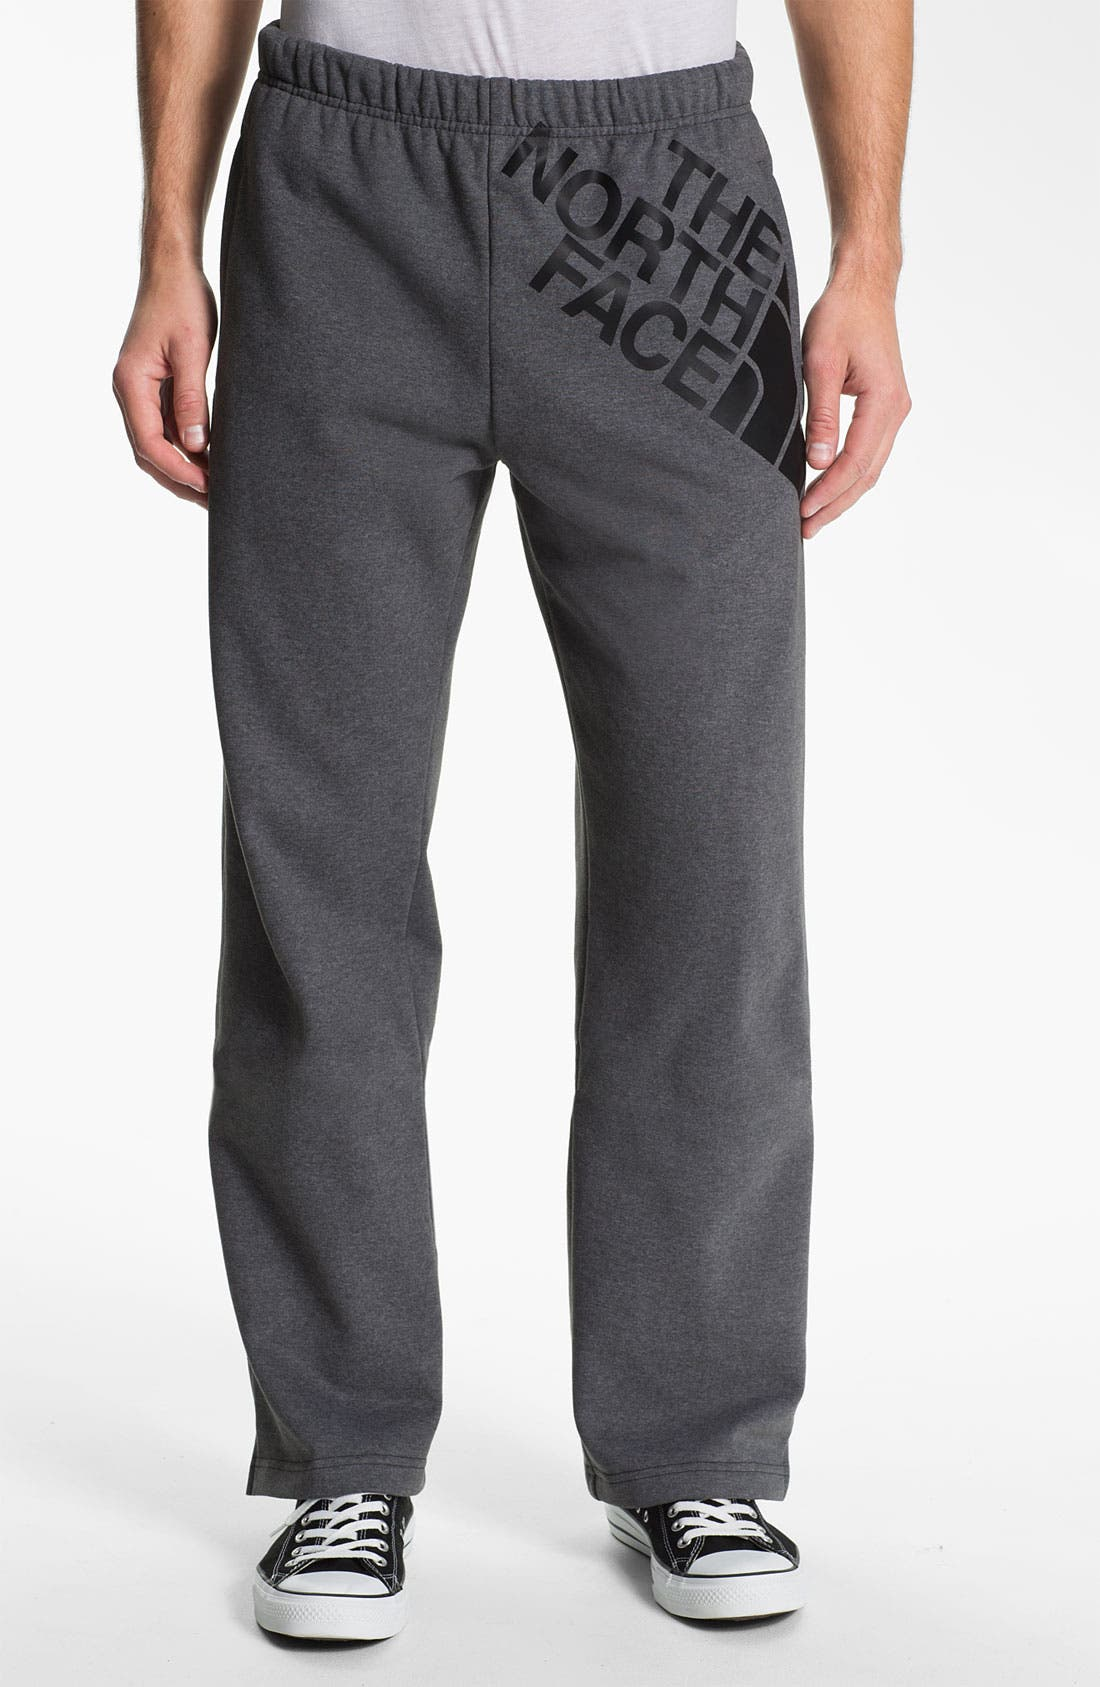 Alternate Image 1 Selected - The North Face 'Rail Line' Athletic Pants